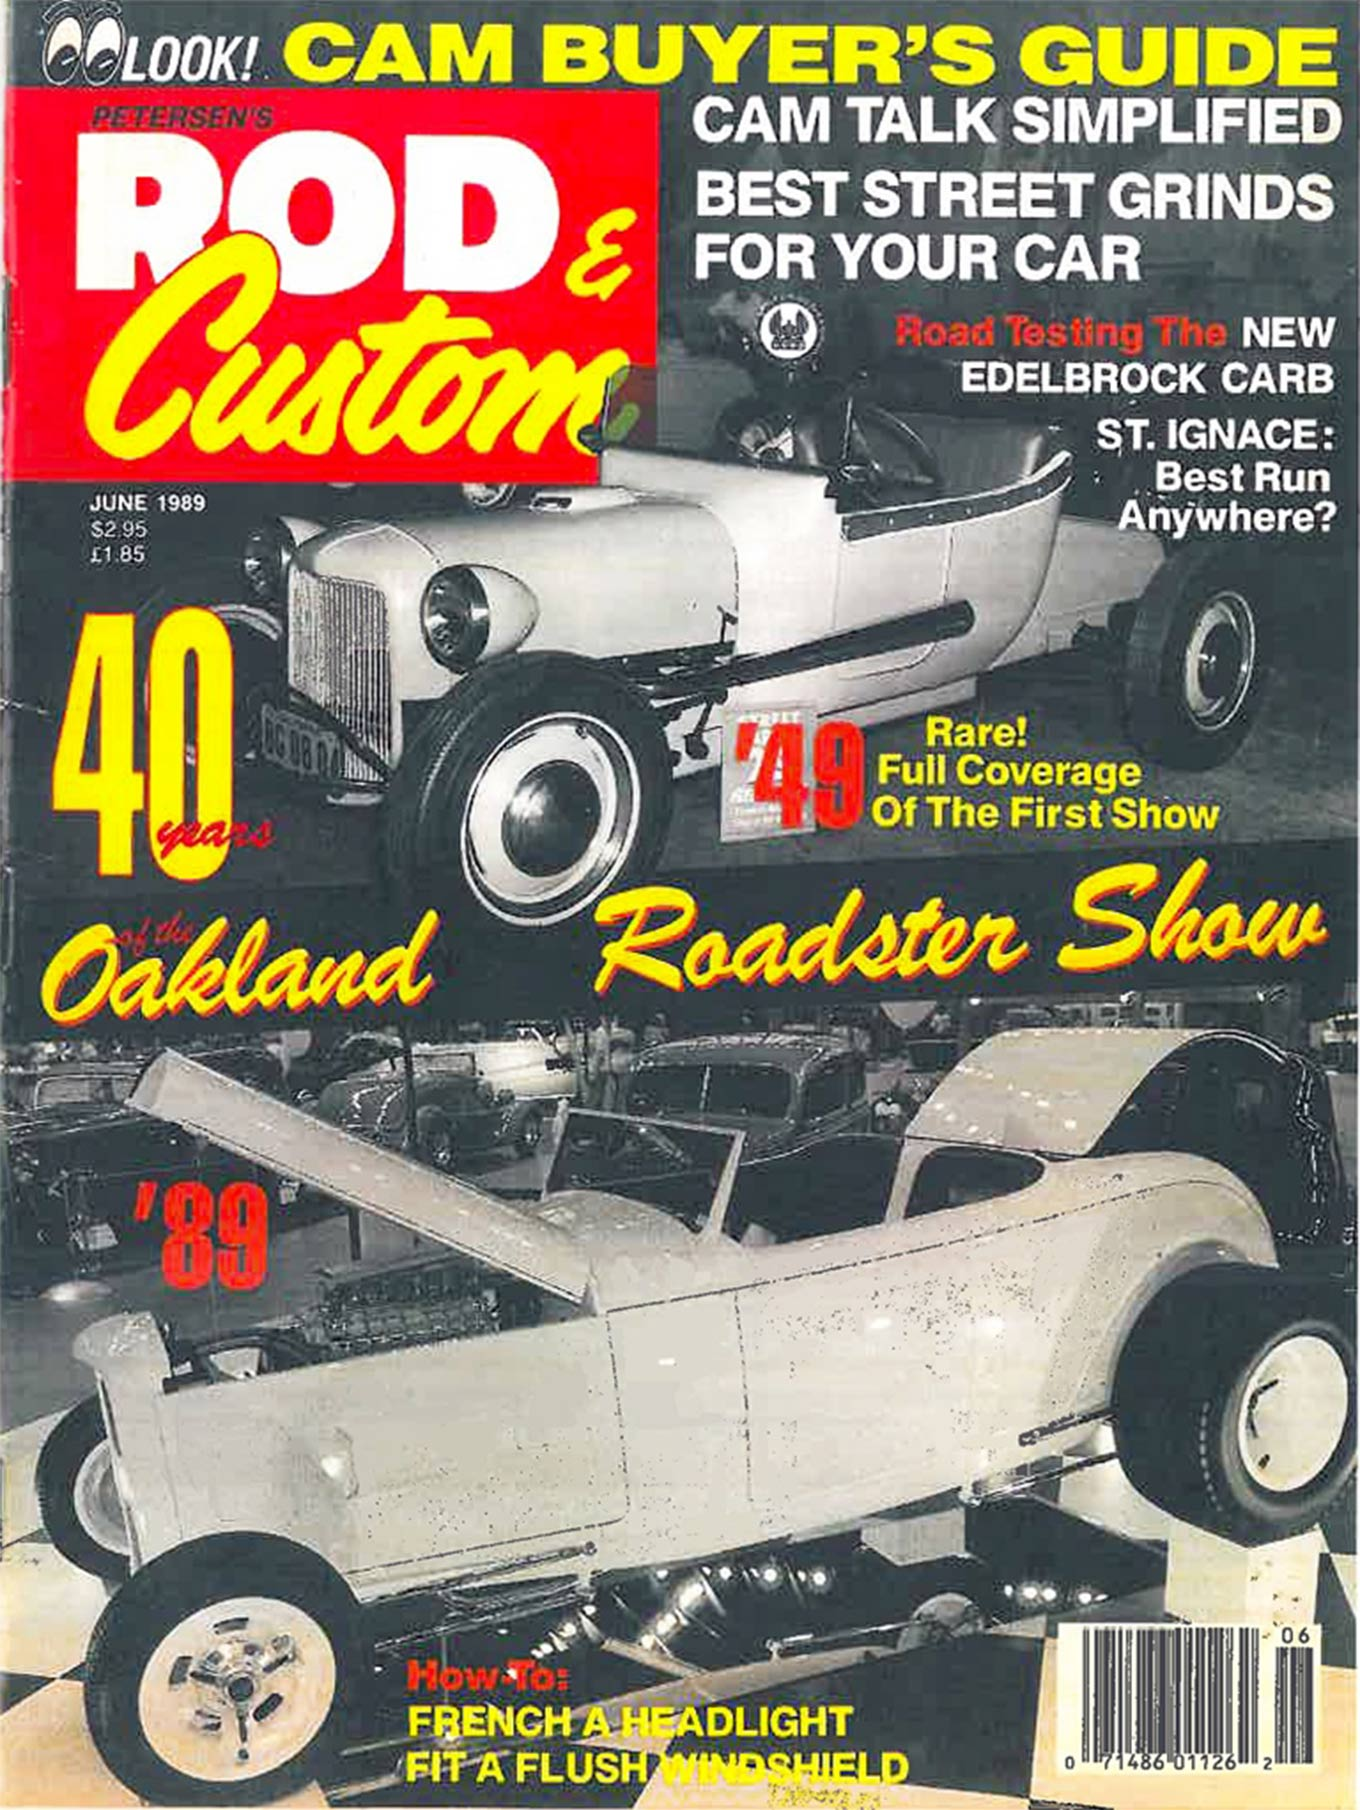 Matranga's roadster was photographed at the GNRS in 1989 and appeared on Rod & Custom magazine's Aug. '89 cover.